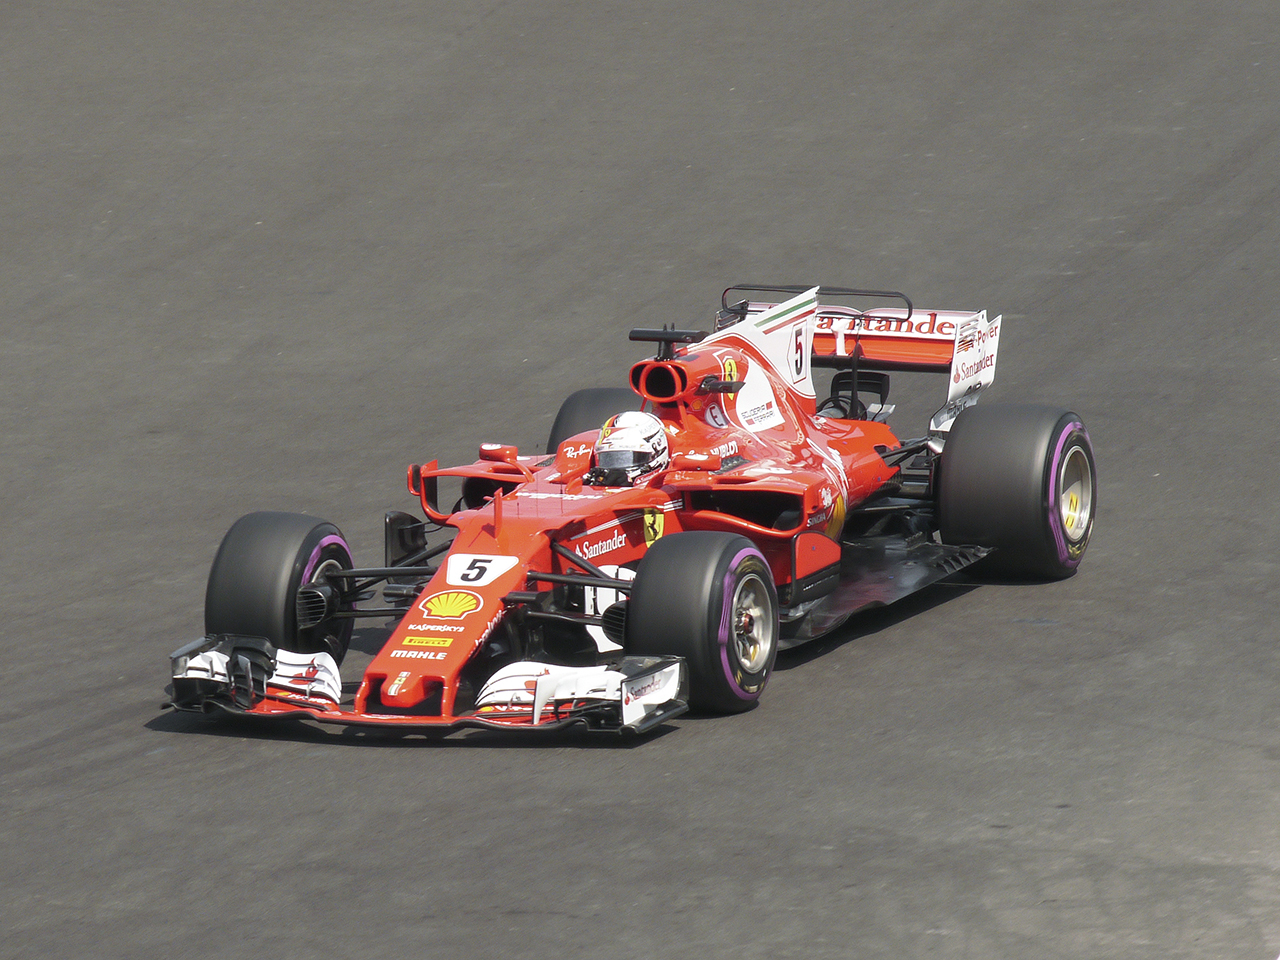 Ferrari had high hopes for a win when Sebastian Vettel put his car in pole position. But after a first lap collision Vettel had to hustle to finish fourth. The many little aero devices and wings funnel air around the car. Note how high the radiators have moved to catch air coming over the wheels. The flat carbon fiber floor extends almost to the outer edge of the wheels for high downforce.